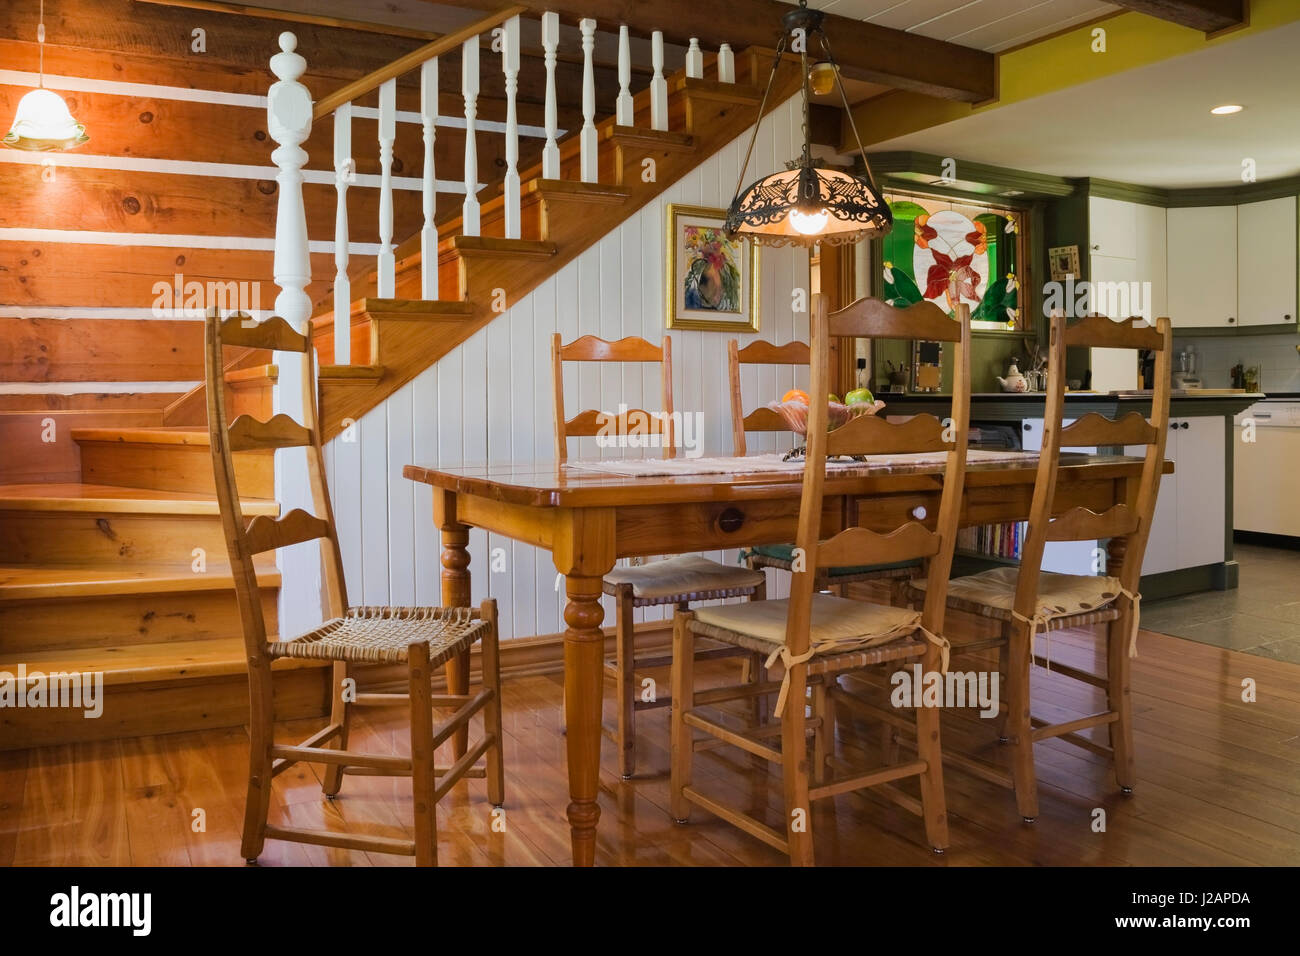 Antique Wooden Dining Table And High Back Chairs In The